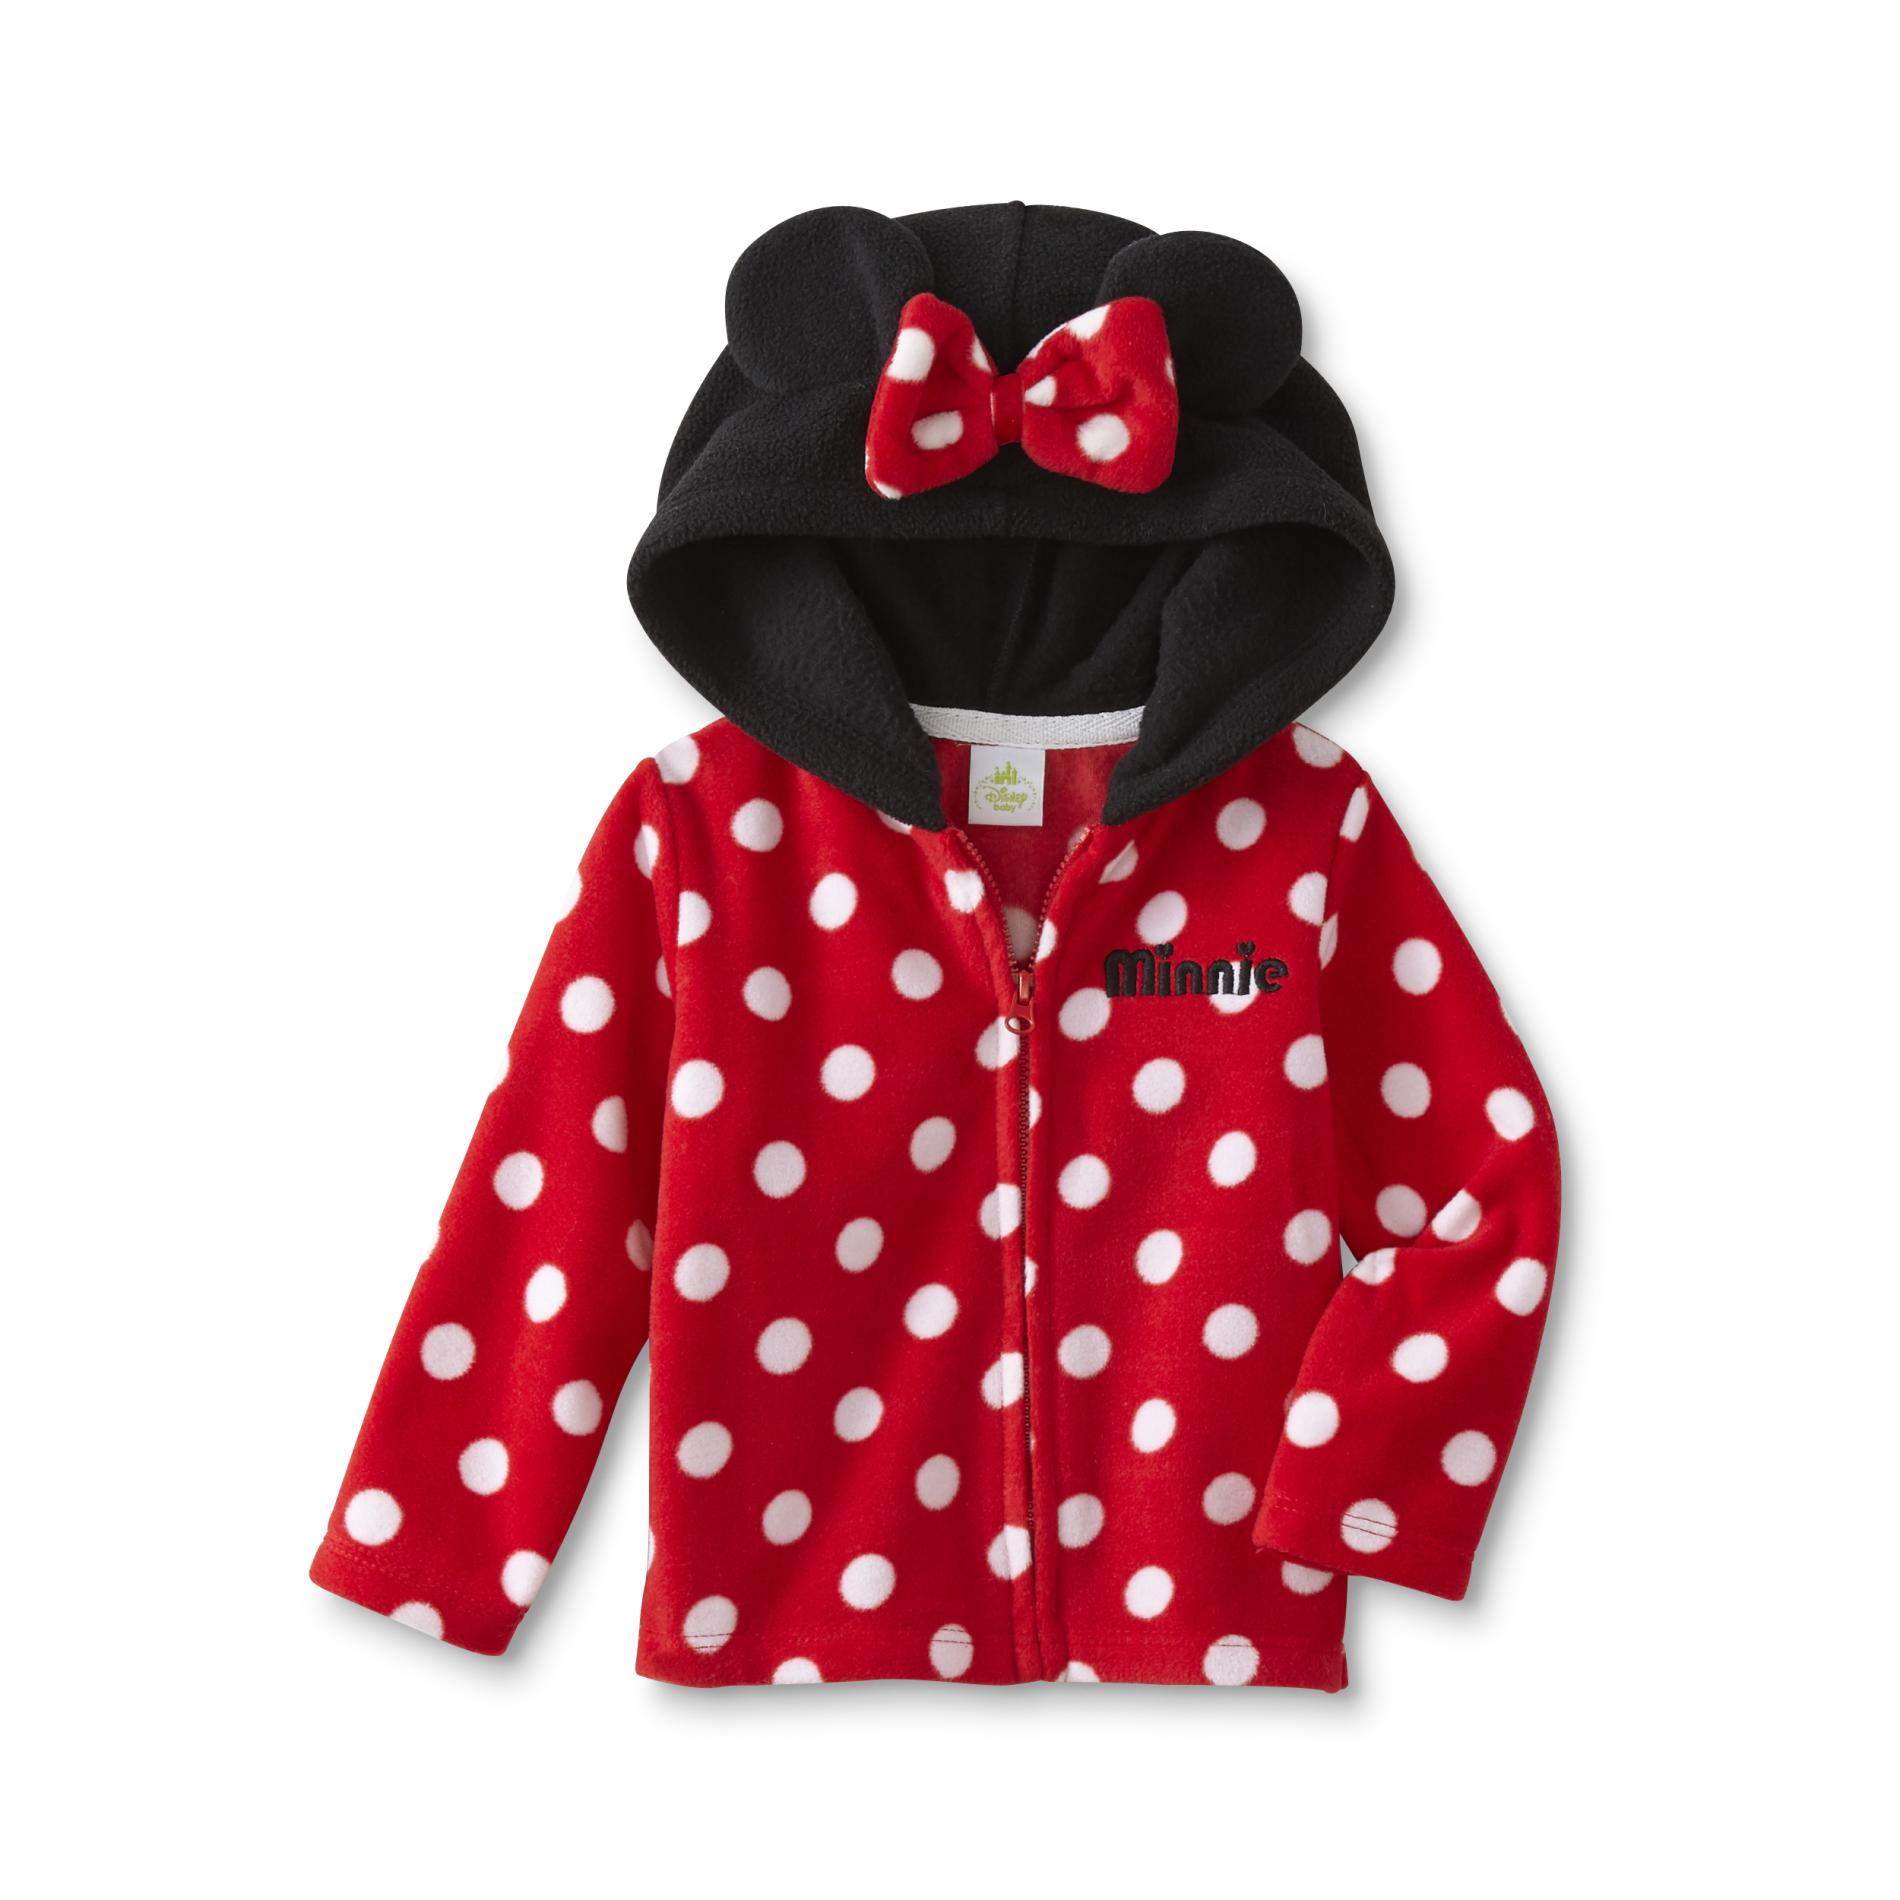 Disney Minnie Mouse Jackets for Girls